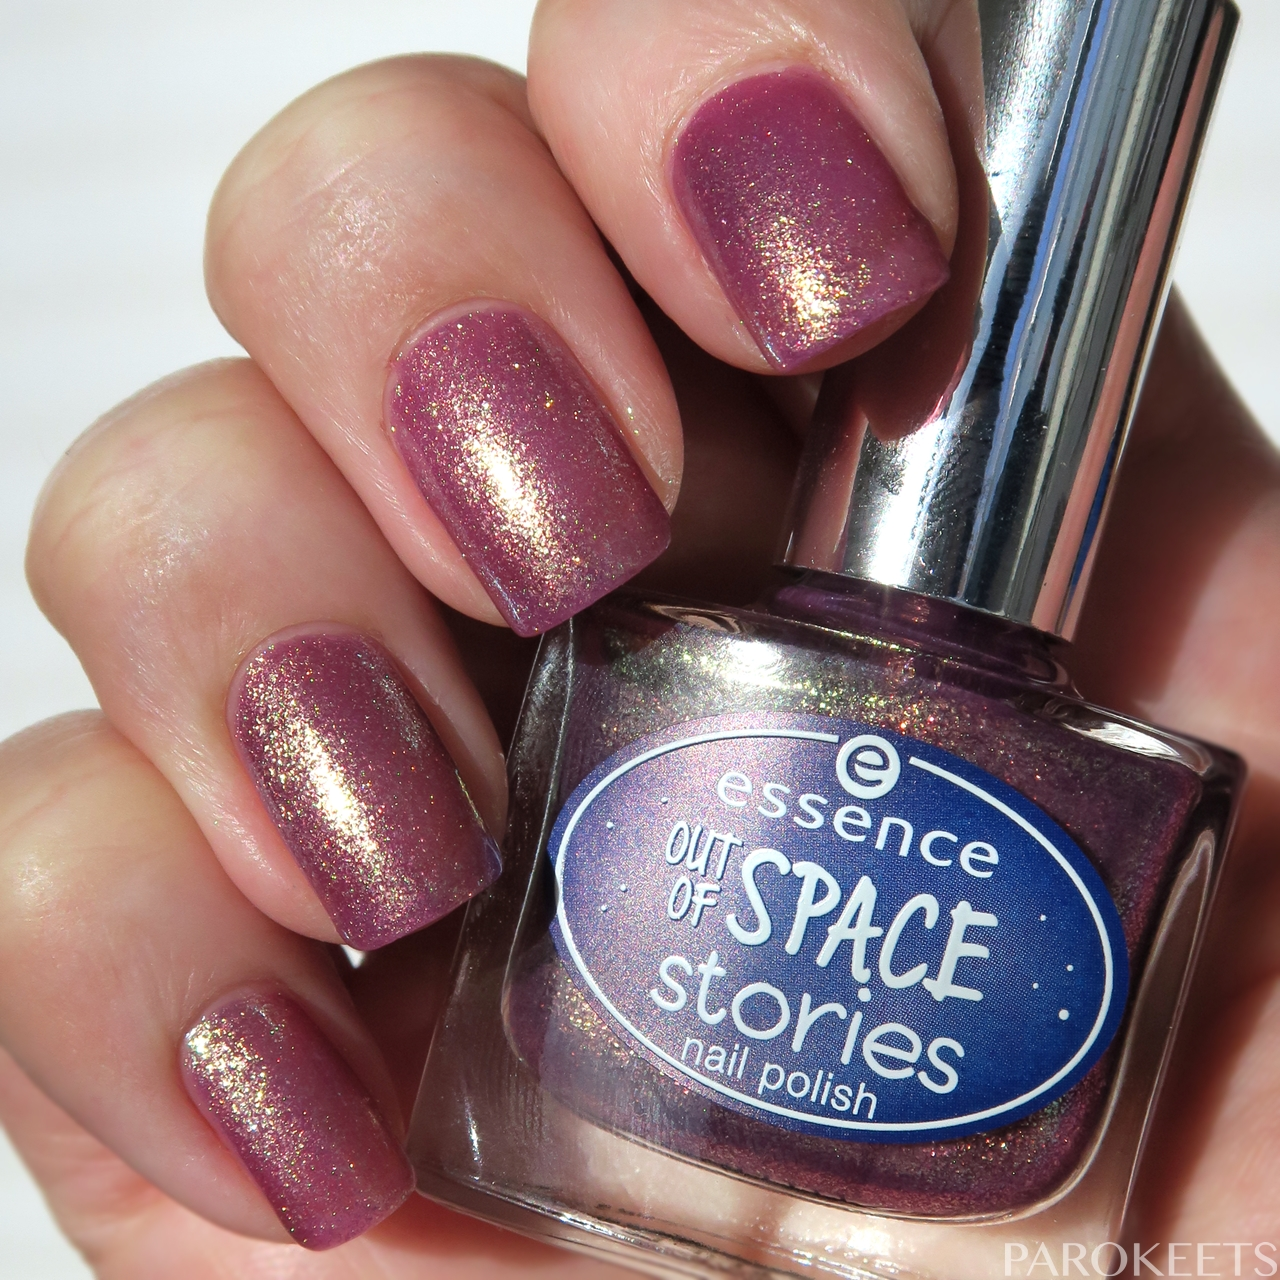 Essence-Space-Glam-Out-of-space-stories-duochrome-nail-polish-sun-by-Gejba.jpg